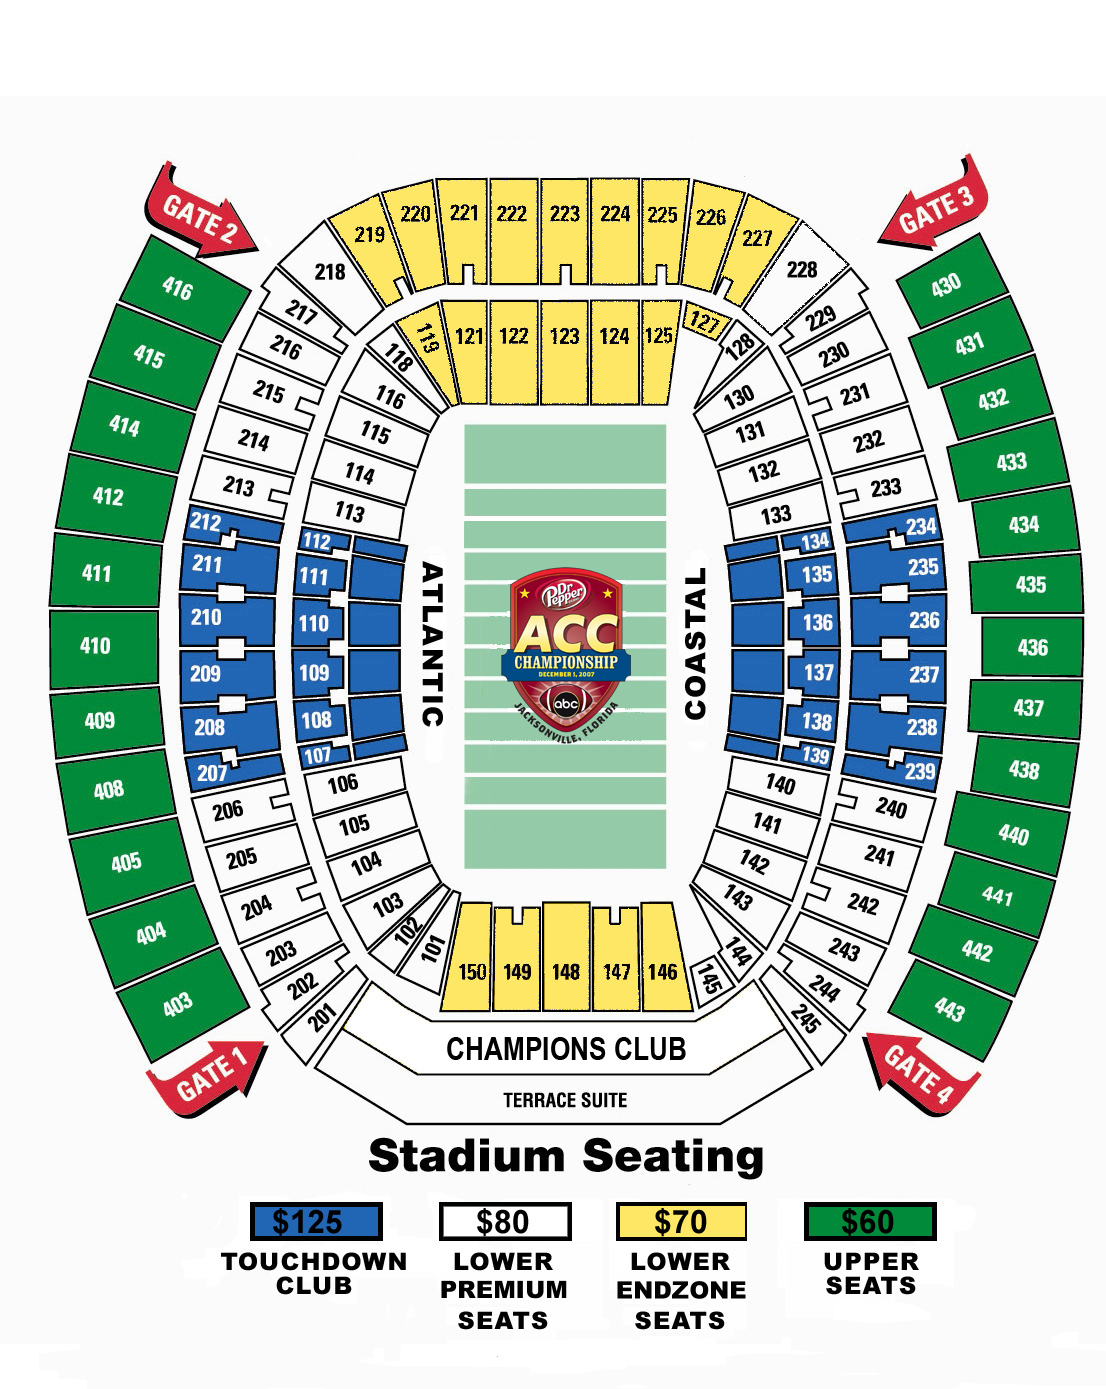 Carolina Panthers Seating Chart & Map | SeatGeek